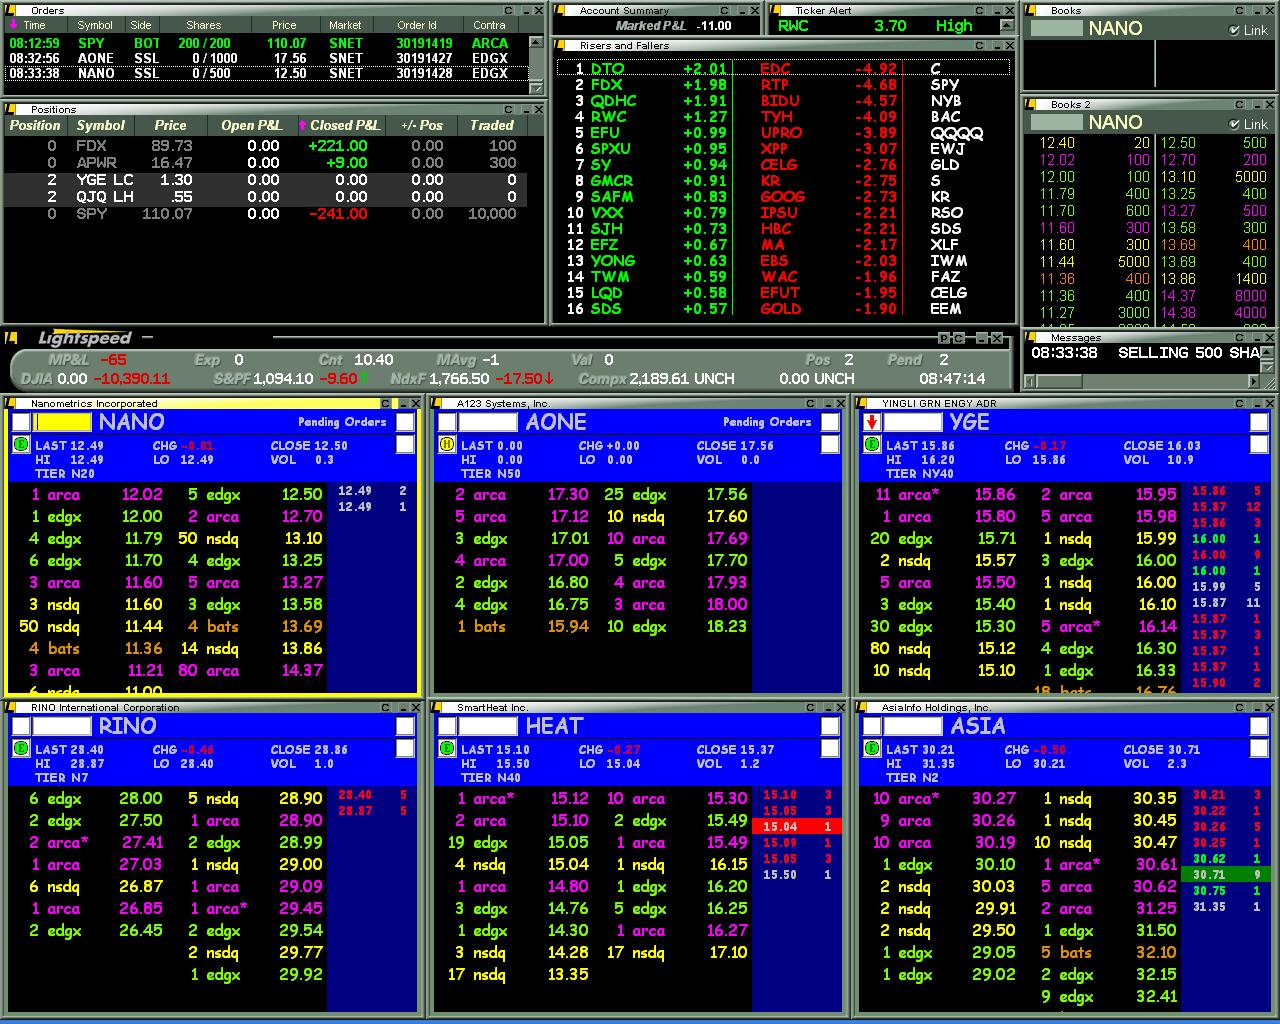 Level 2 Stock Quotes An Active Trader's Layout  T3Live